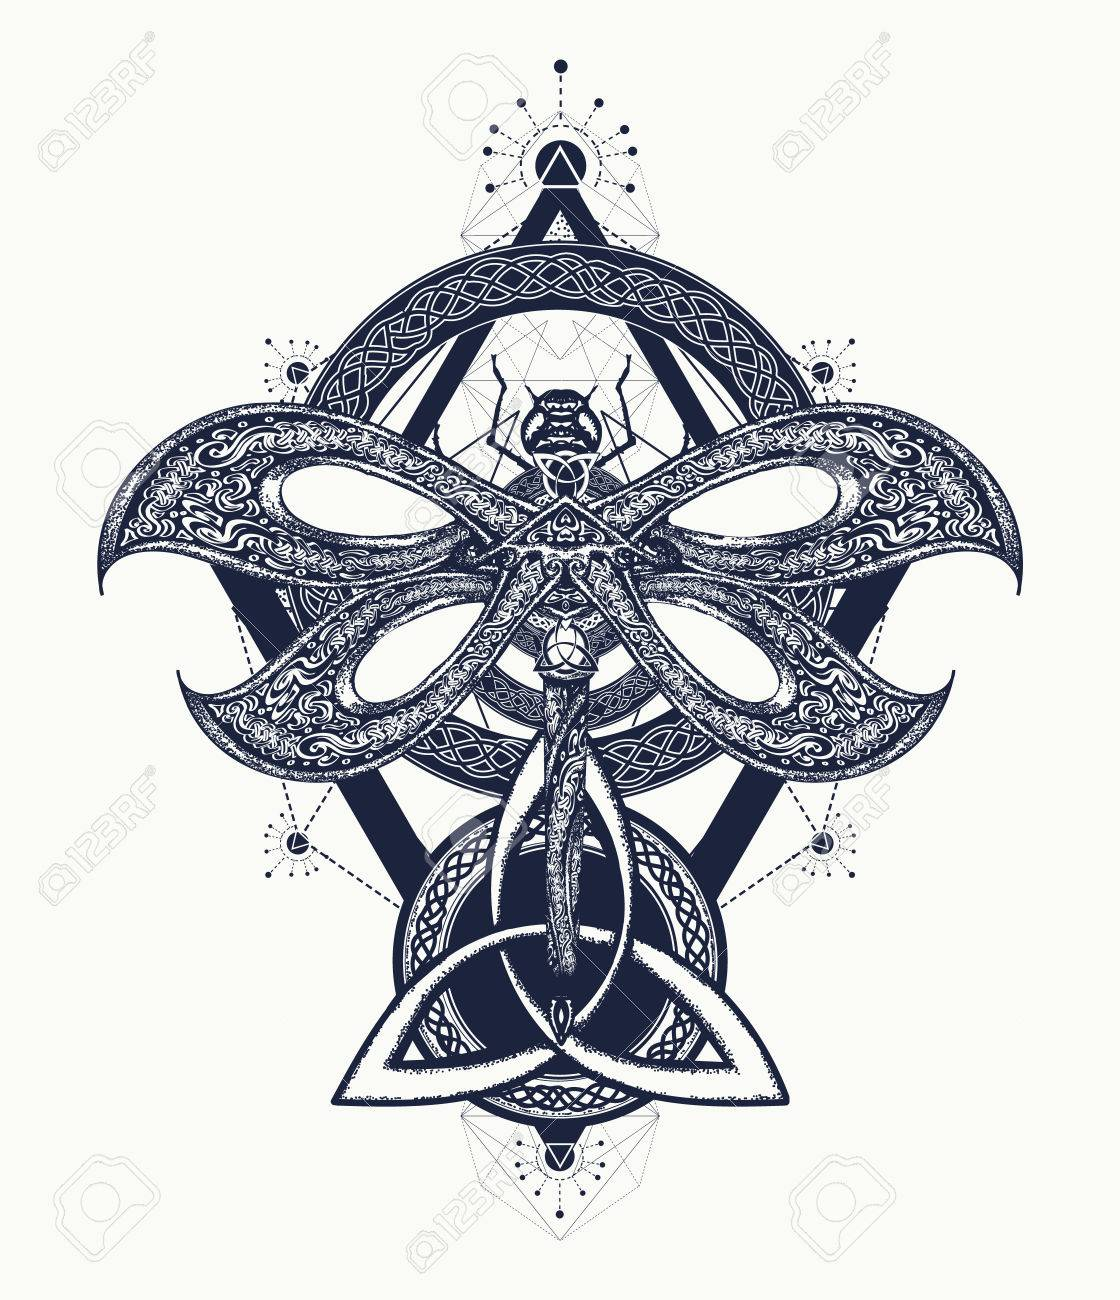 d8fc7ed98 Dragonfly tattoo celtic style. Hand drawn mystical symbols and insects.  Alchemy, religion,